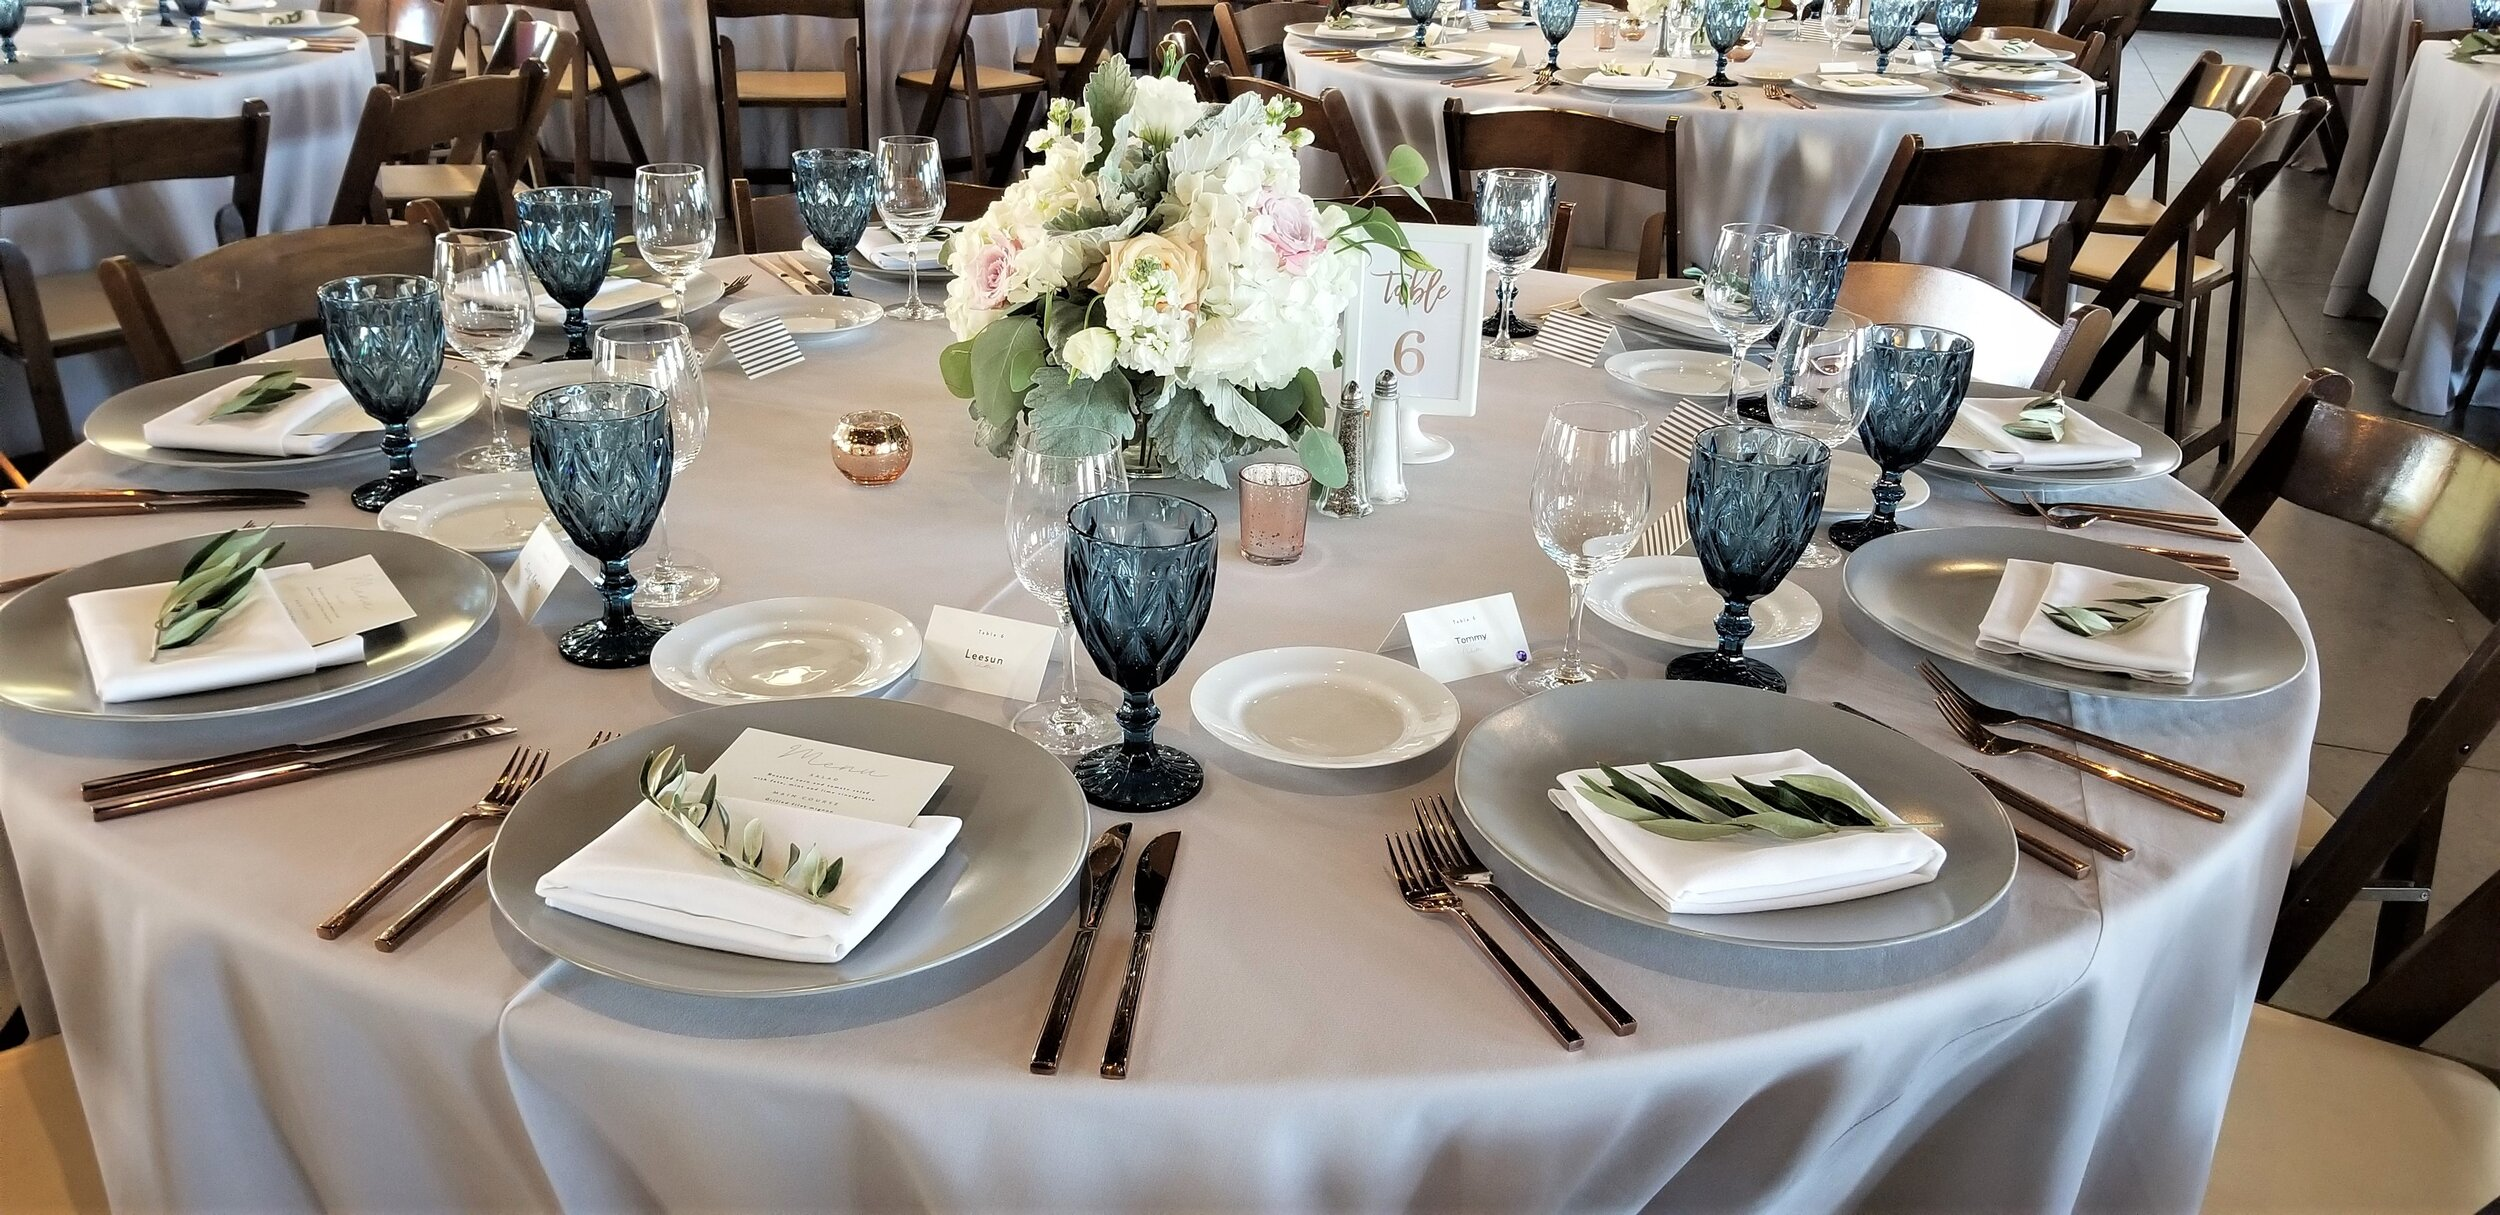 Round guest table centerpiece at Viansa Winery in Sonoma. Mauve, blush and white flowers, olive sprigs on each place setting.